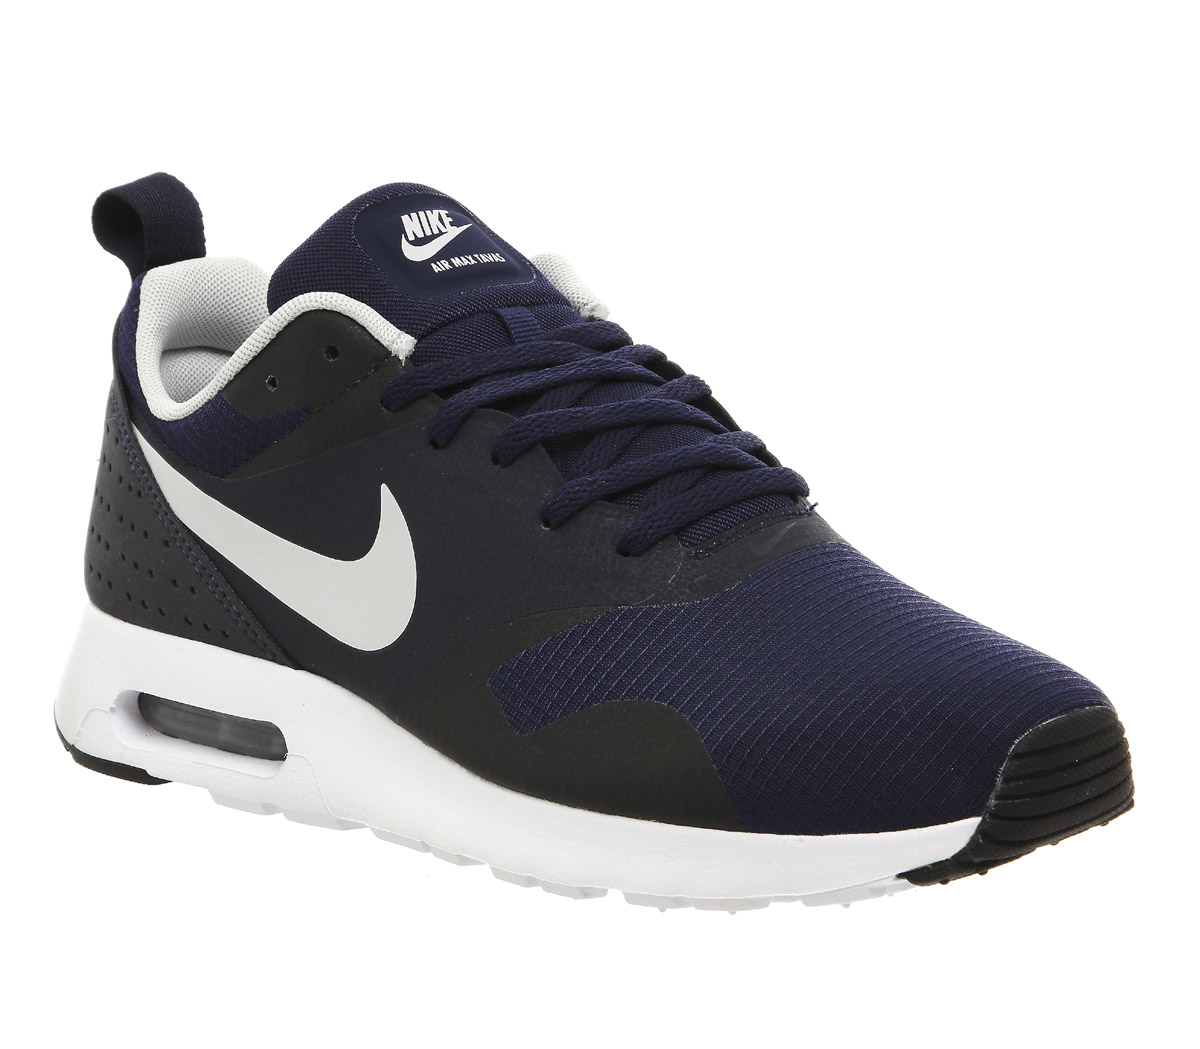 nike air max tavas low top sneakers in blue for men lyst. Black Bedroom Furniture Sets. Home Design Ideas